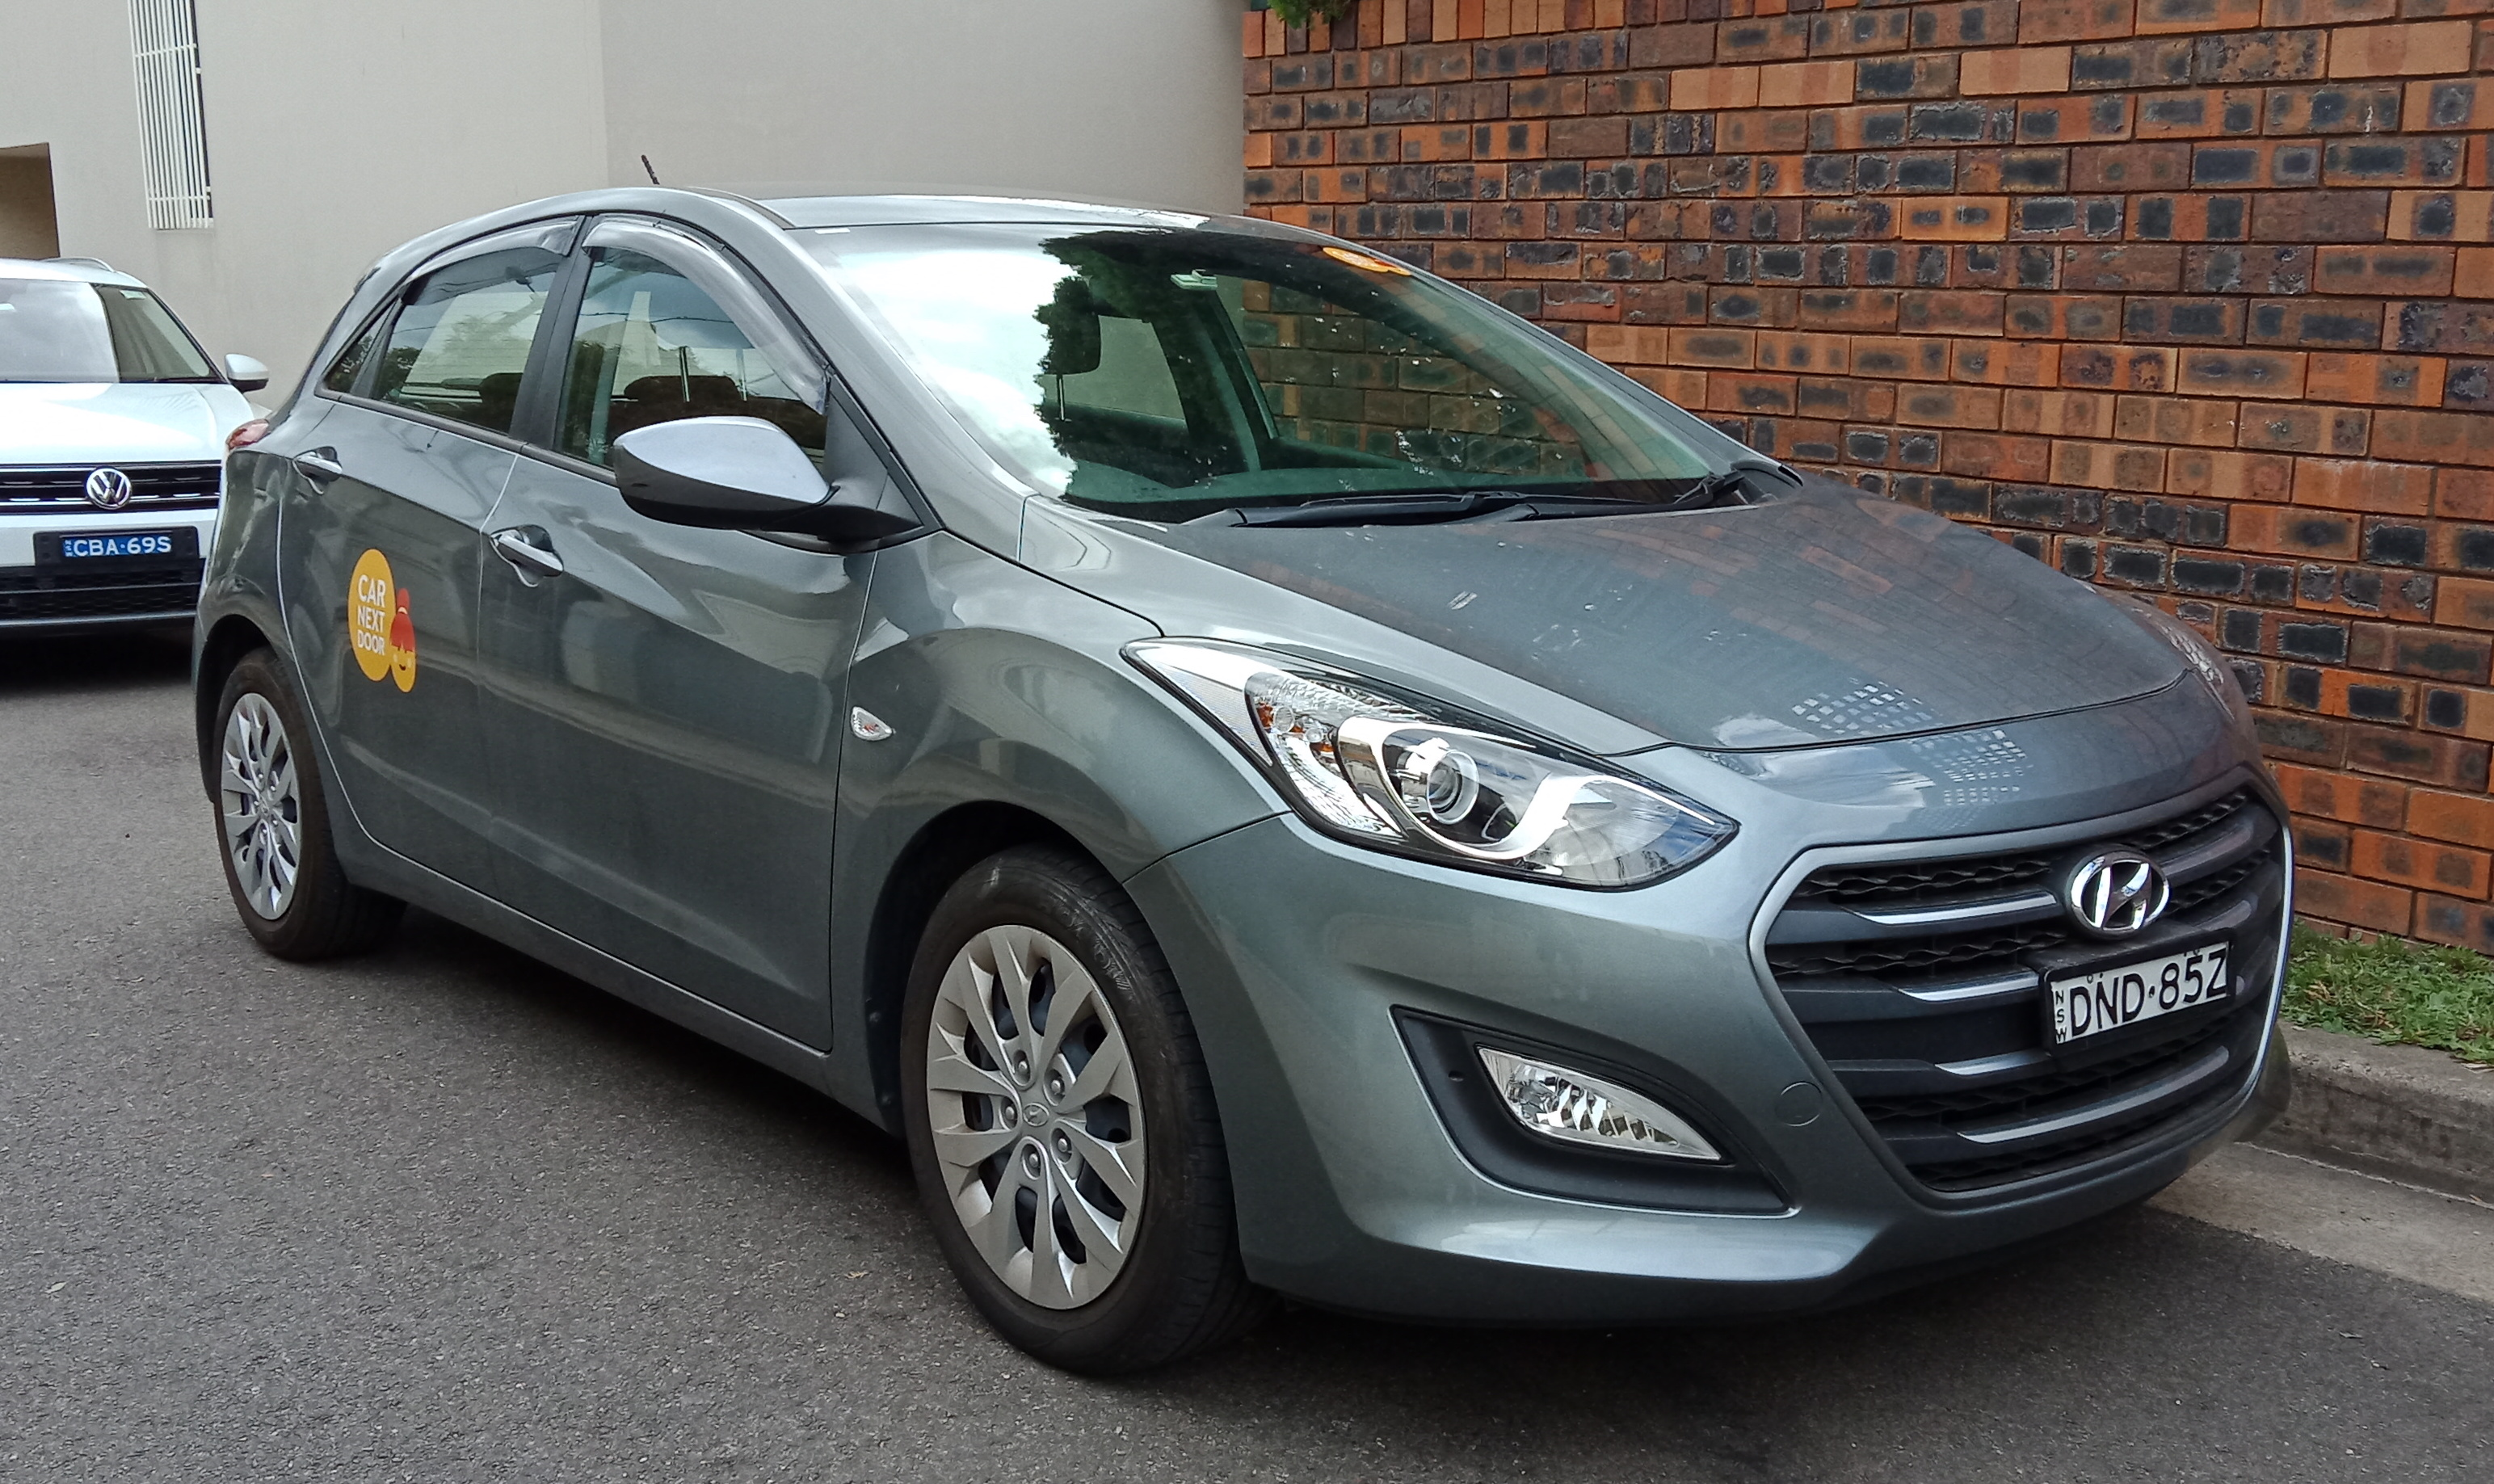 Picture of Bronte's 2017 Hyundai i30